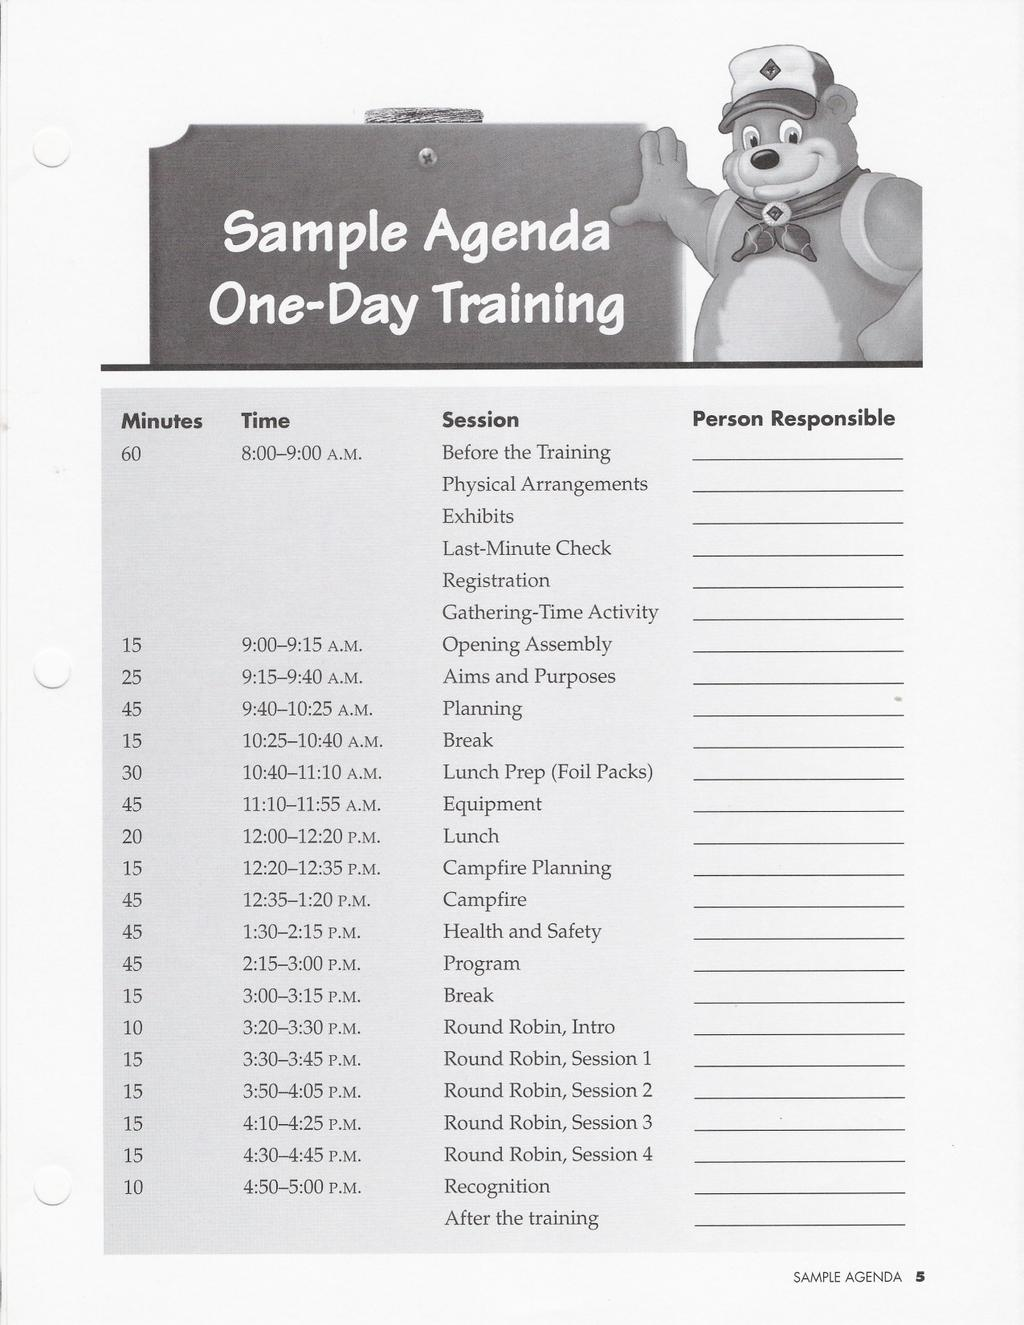 "Minutes Time Session Person Responsible 60 8:00-9:00 A.M. Before the Training Physical Arrangements Exhibits Last-Minute Check Registration Gathering-Time Activity 15 9:00-9:15 A.M. Opening Assembly ""-- 25 9:15-9:40 A."